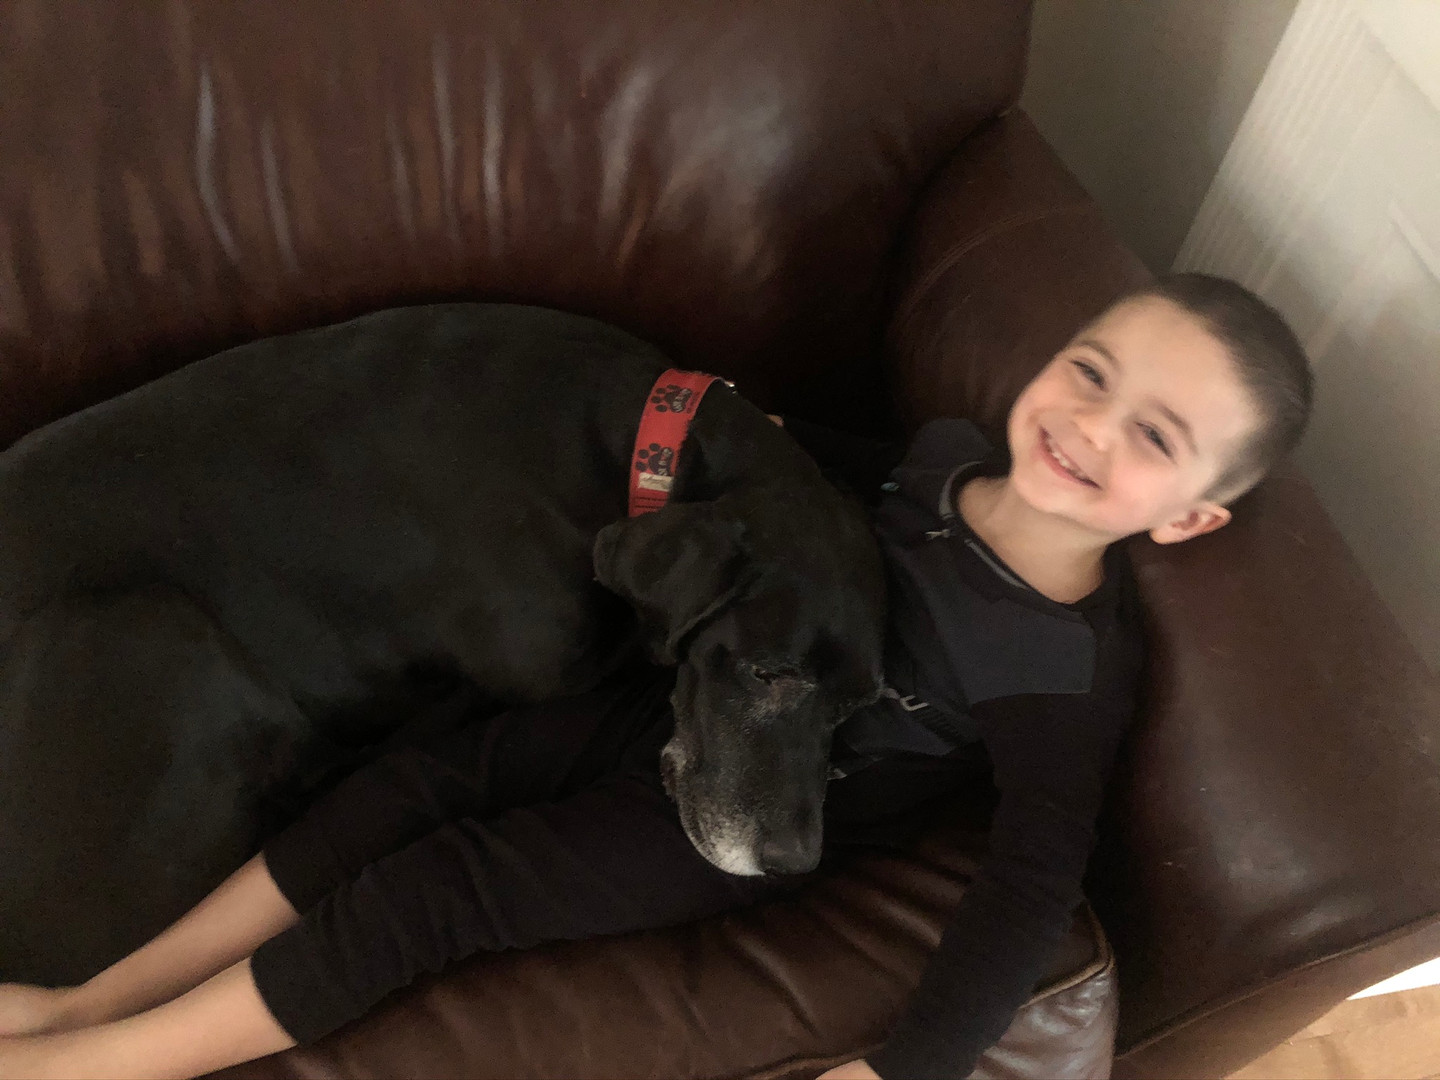 Kristin's son cuddling the dog on the couch